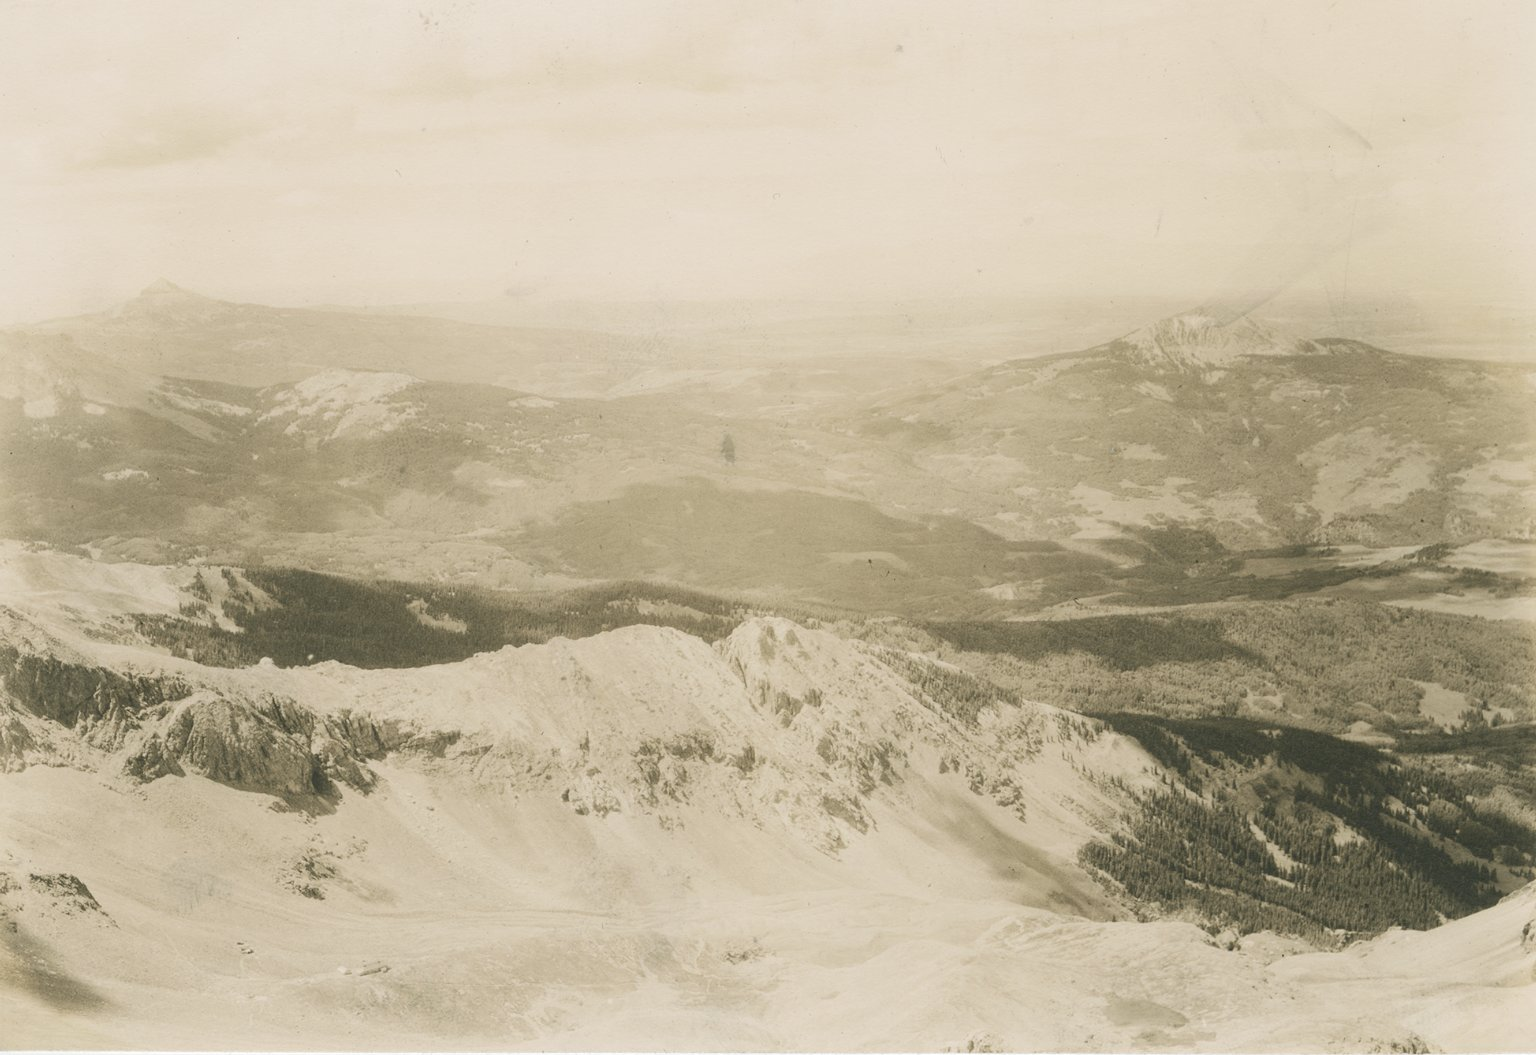 Untitled photo of mountain slope, with forested valleys and several distant peaks.